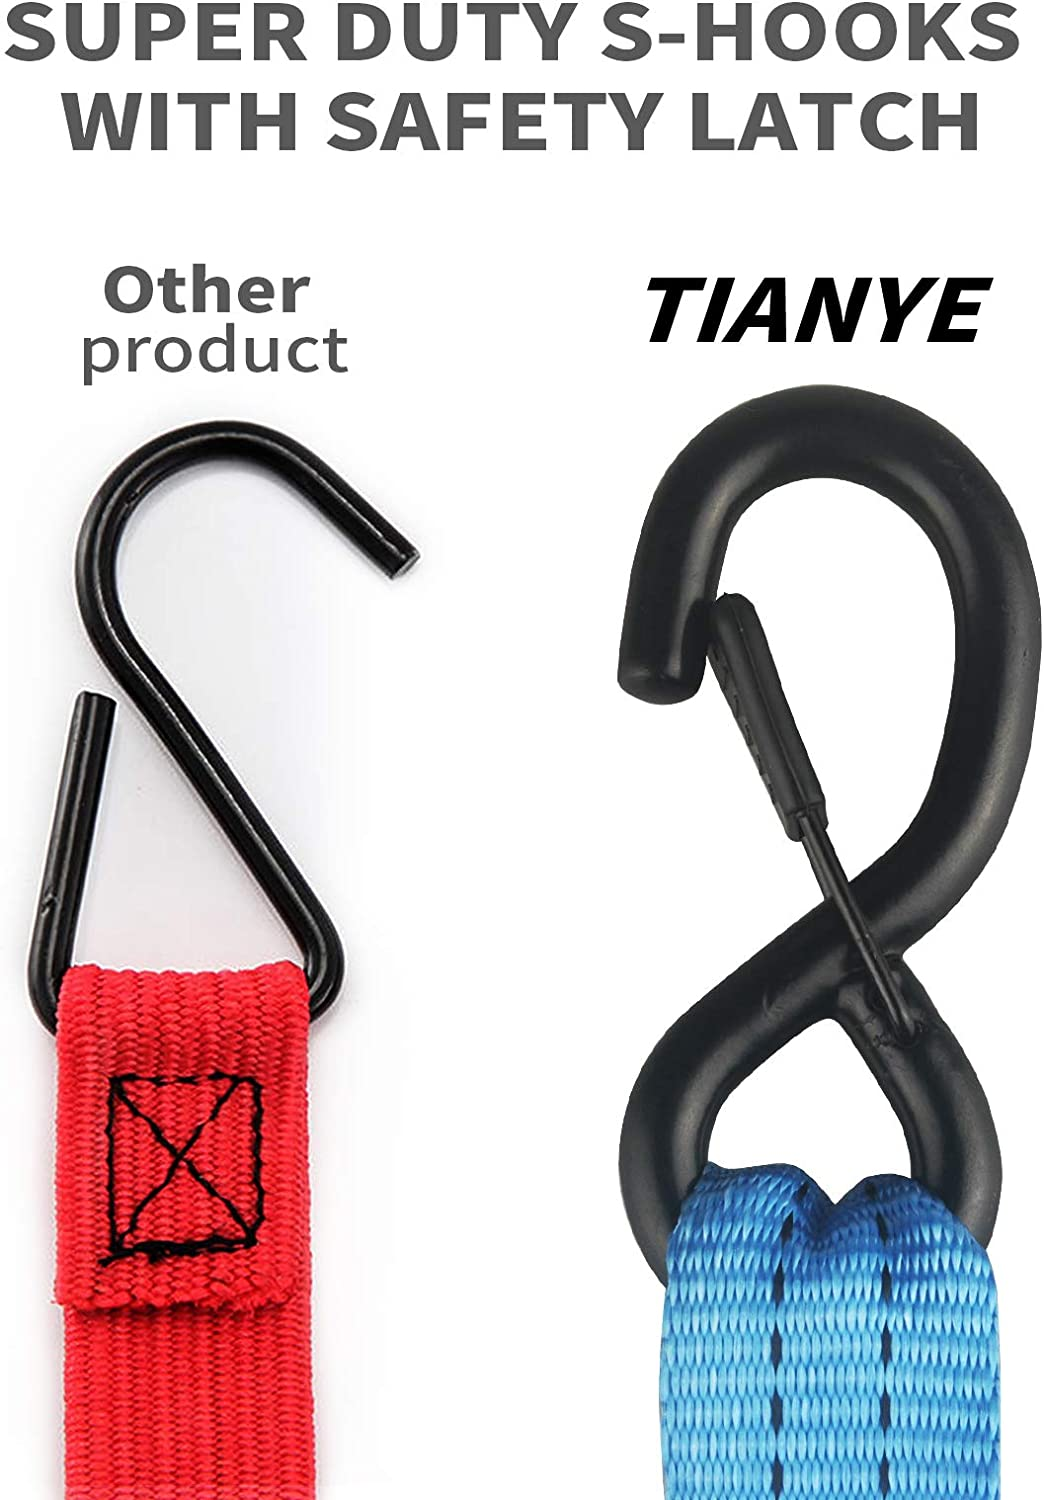 Ratchet Straps, 5,208 Break Strength 1 x 14 Cargo Tiedowns w//Padded Handles Black Heavy Duty Tie Down Set 4PK for Moving Securing Cargo